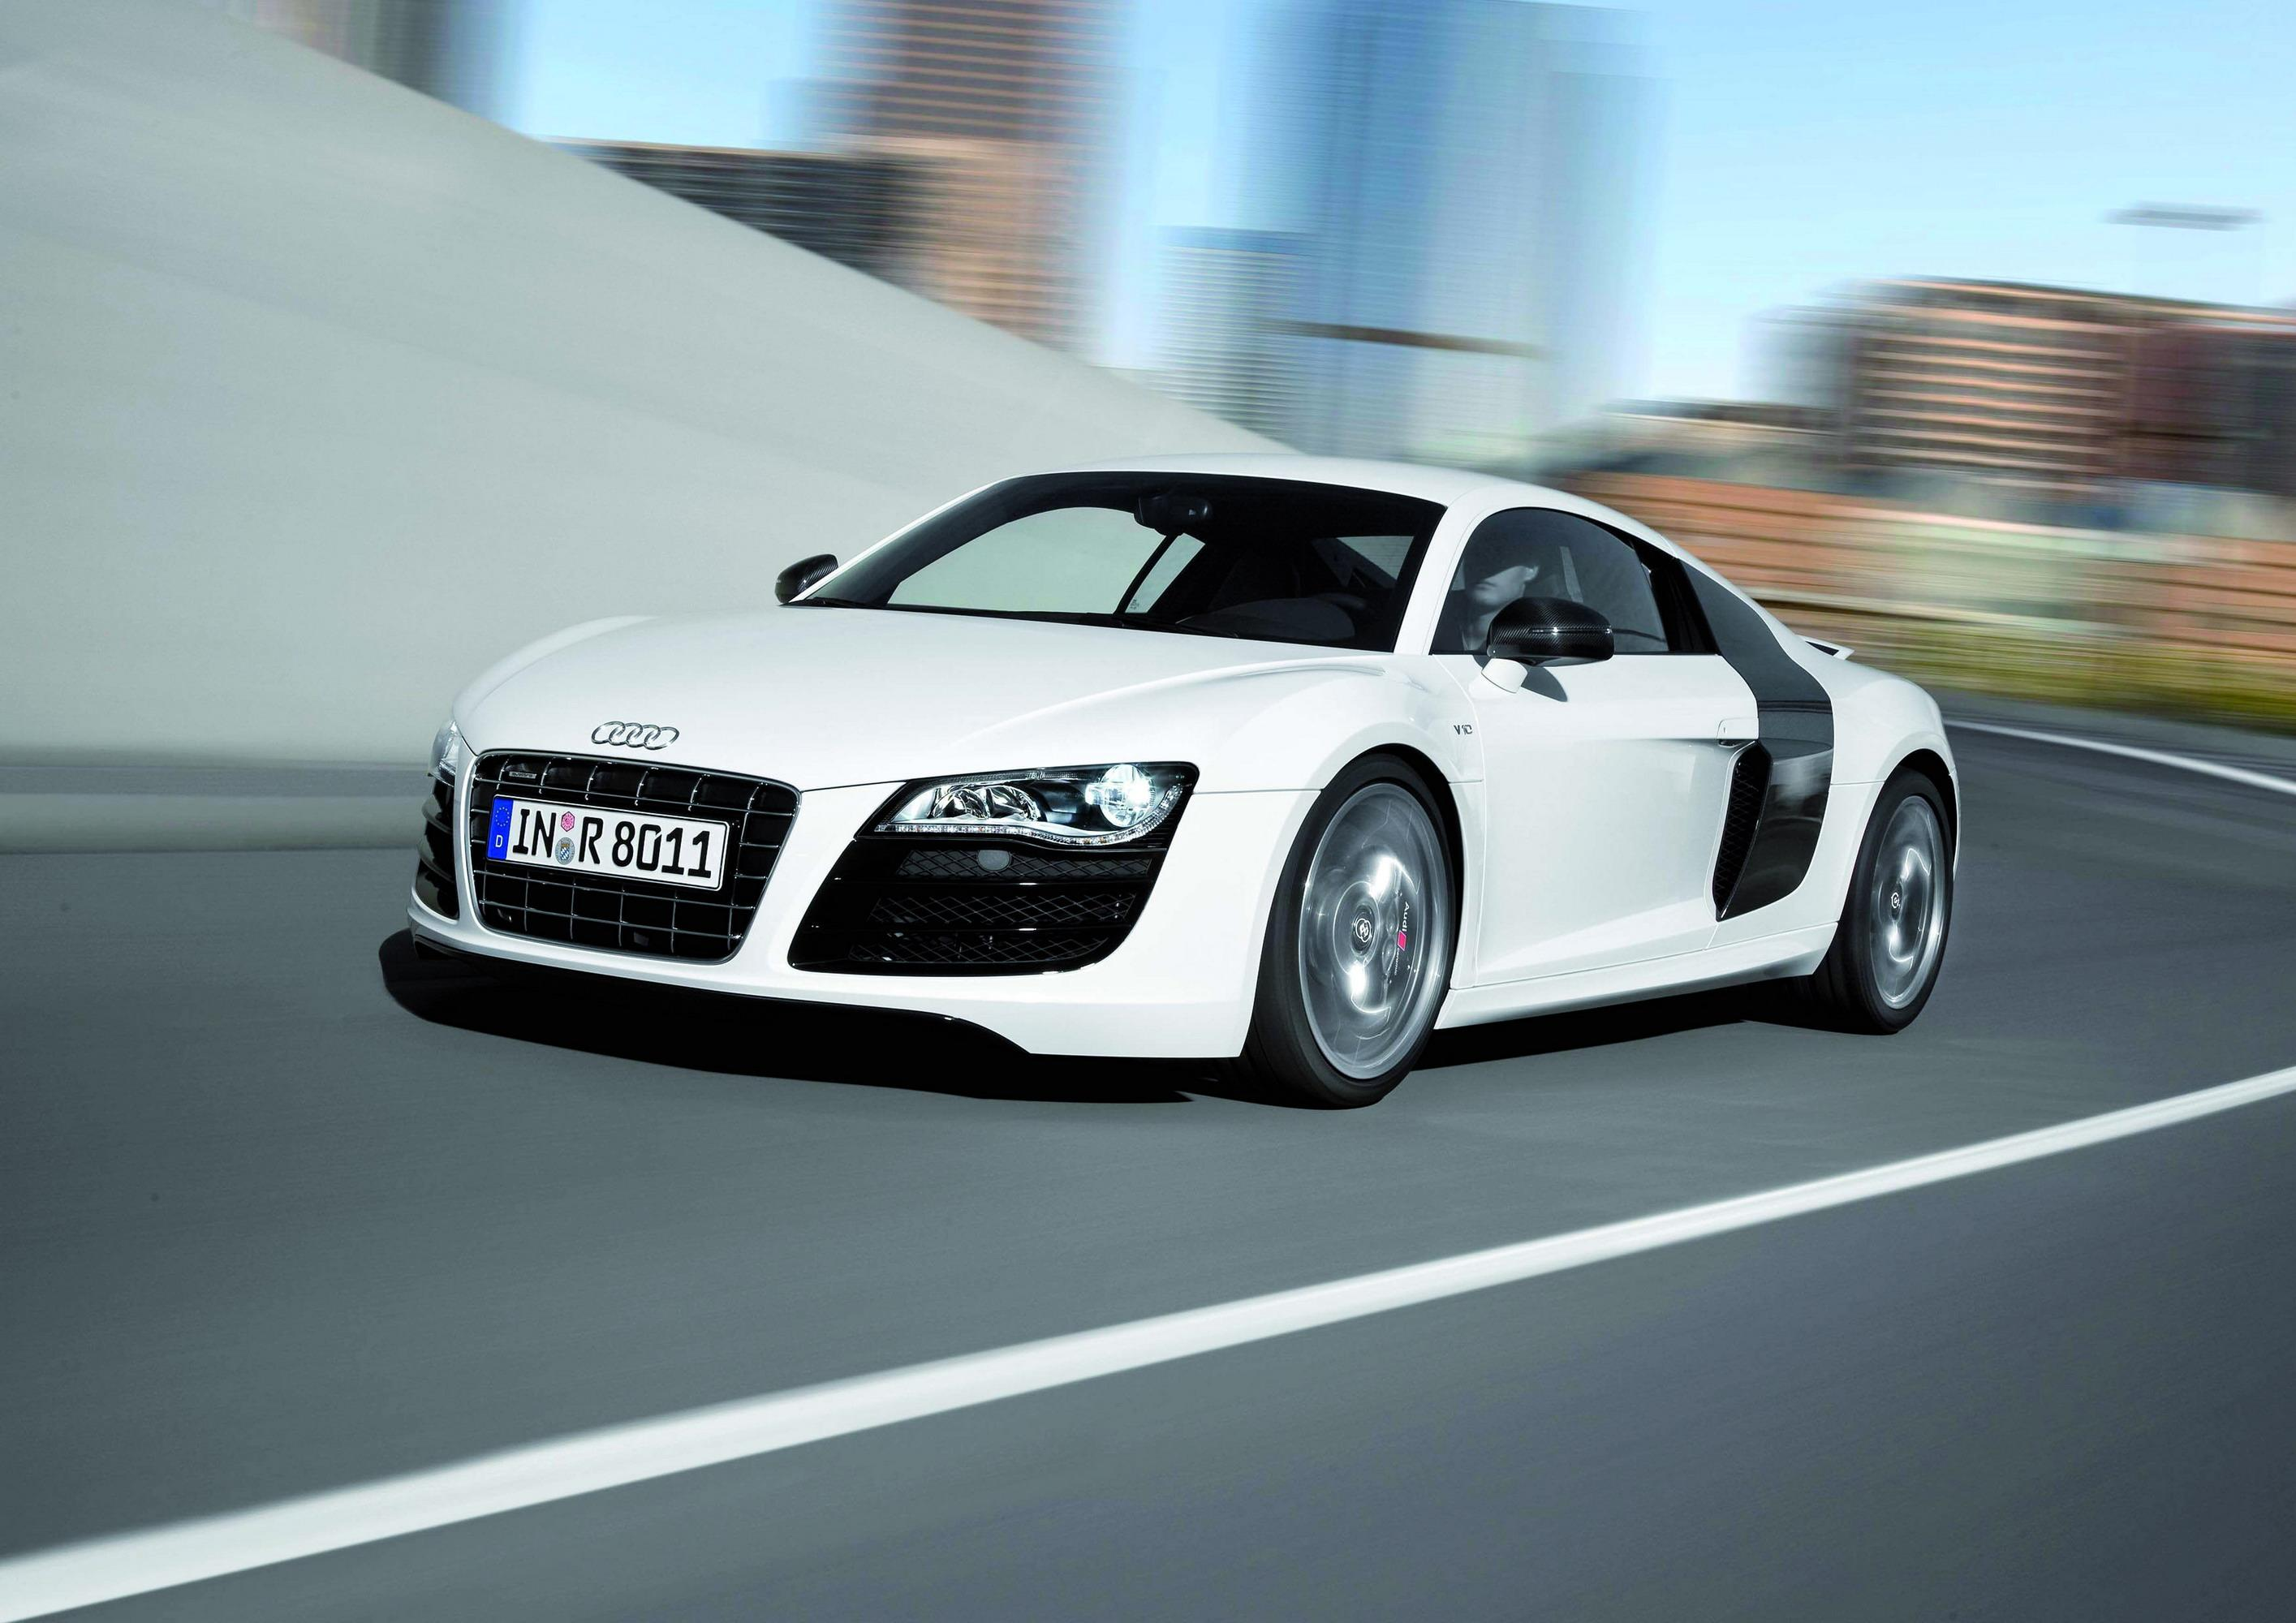 2010 Audi R8 V10 5.2 FSI Review   Top Speed. »